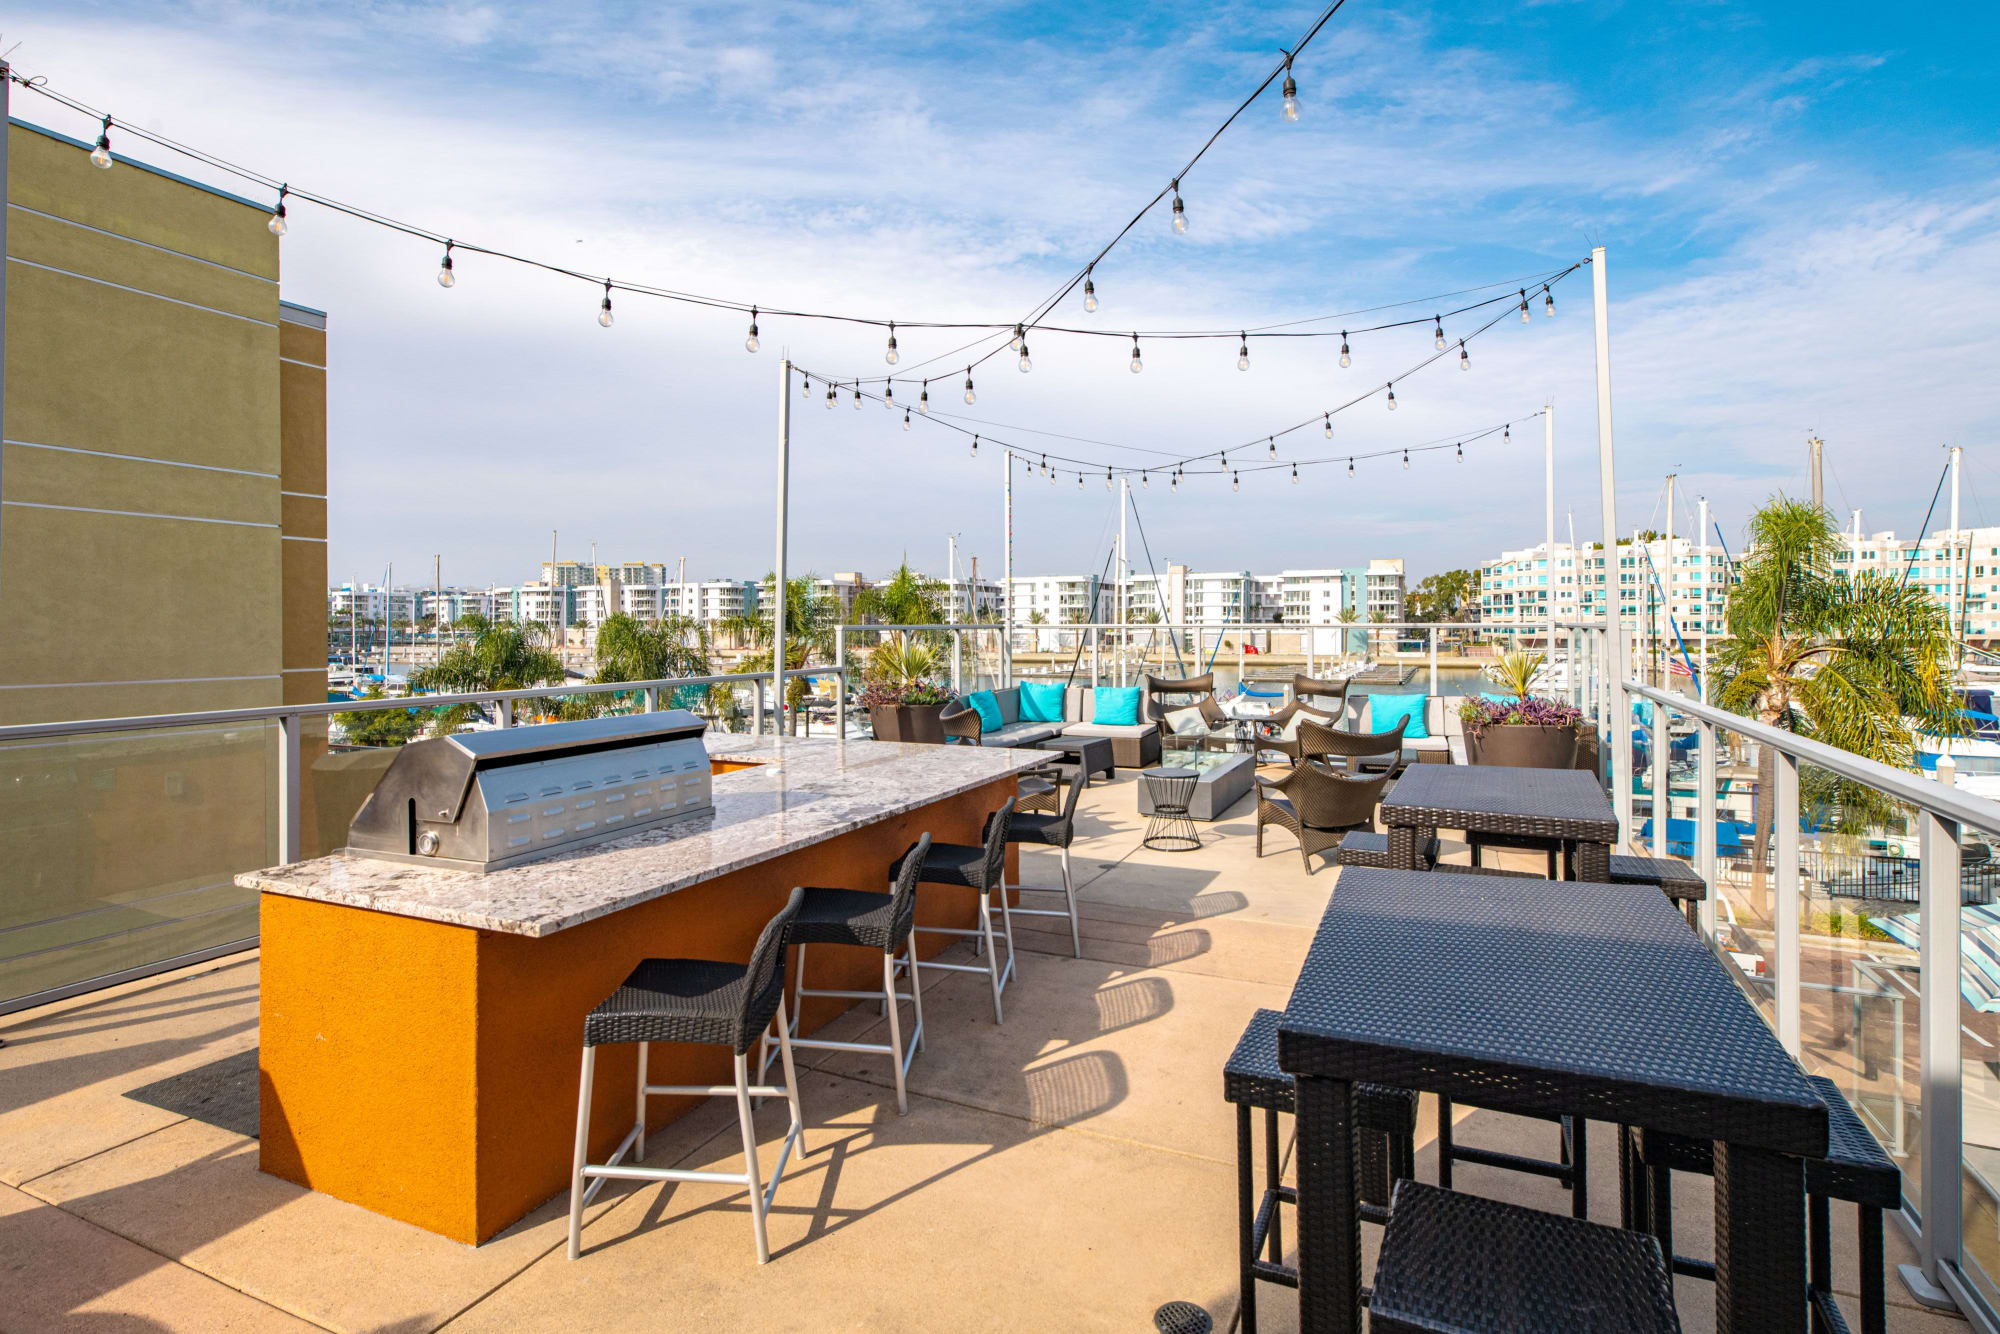 Barbecue poolside with your friends while enjoying view of the marina at Harborside Marina Bay Apartments in Marina del Rey, California